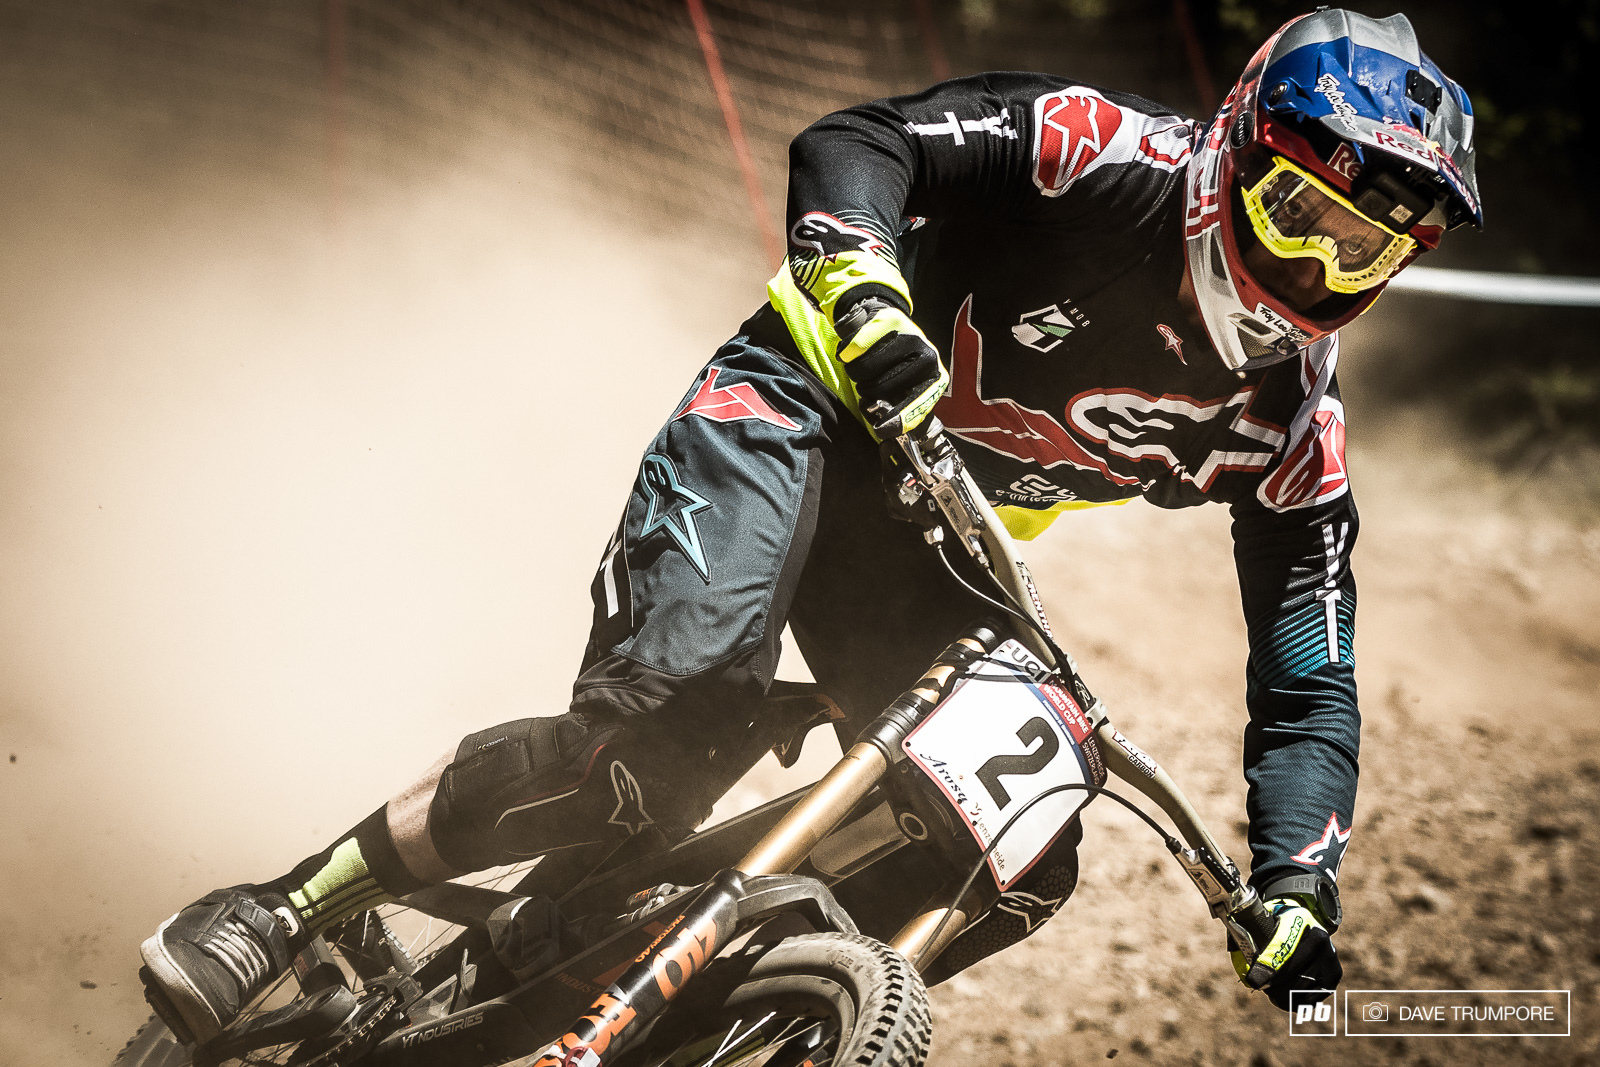 Aaron Gwin drifting about in the dust.